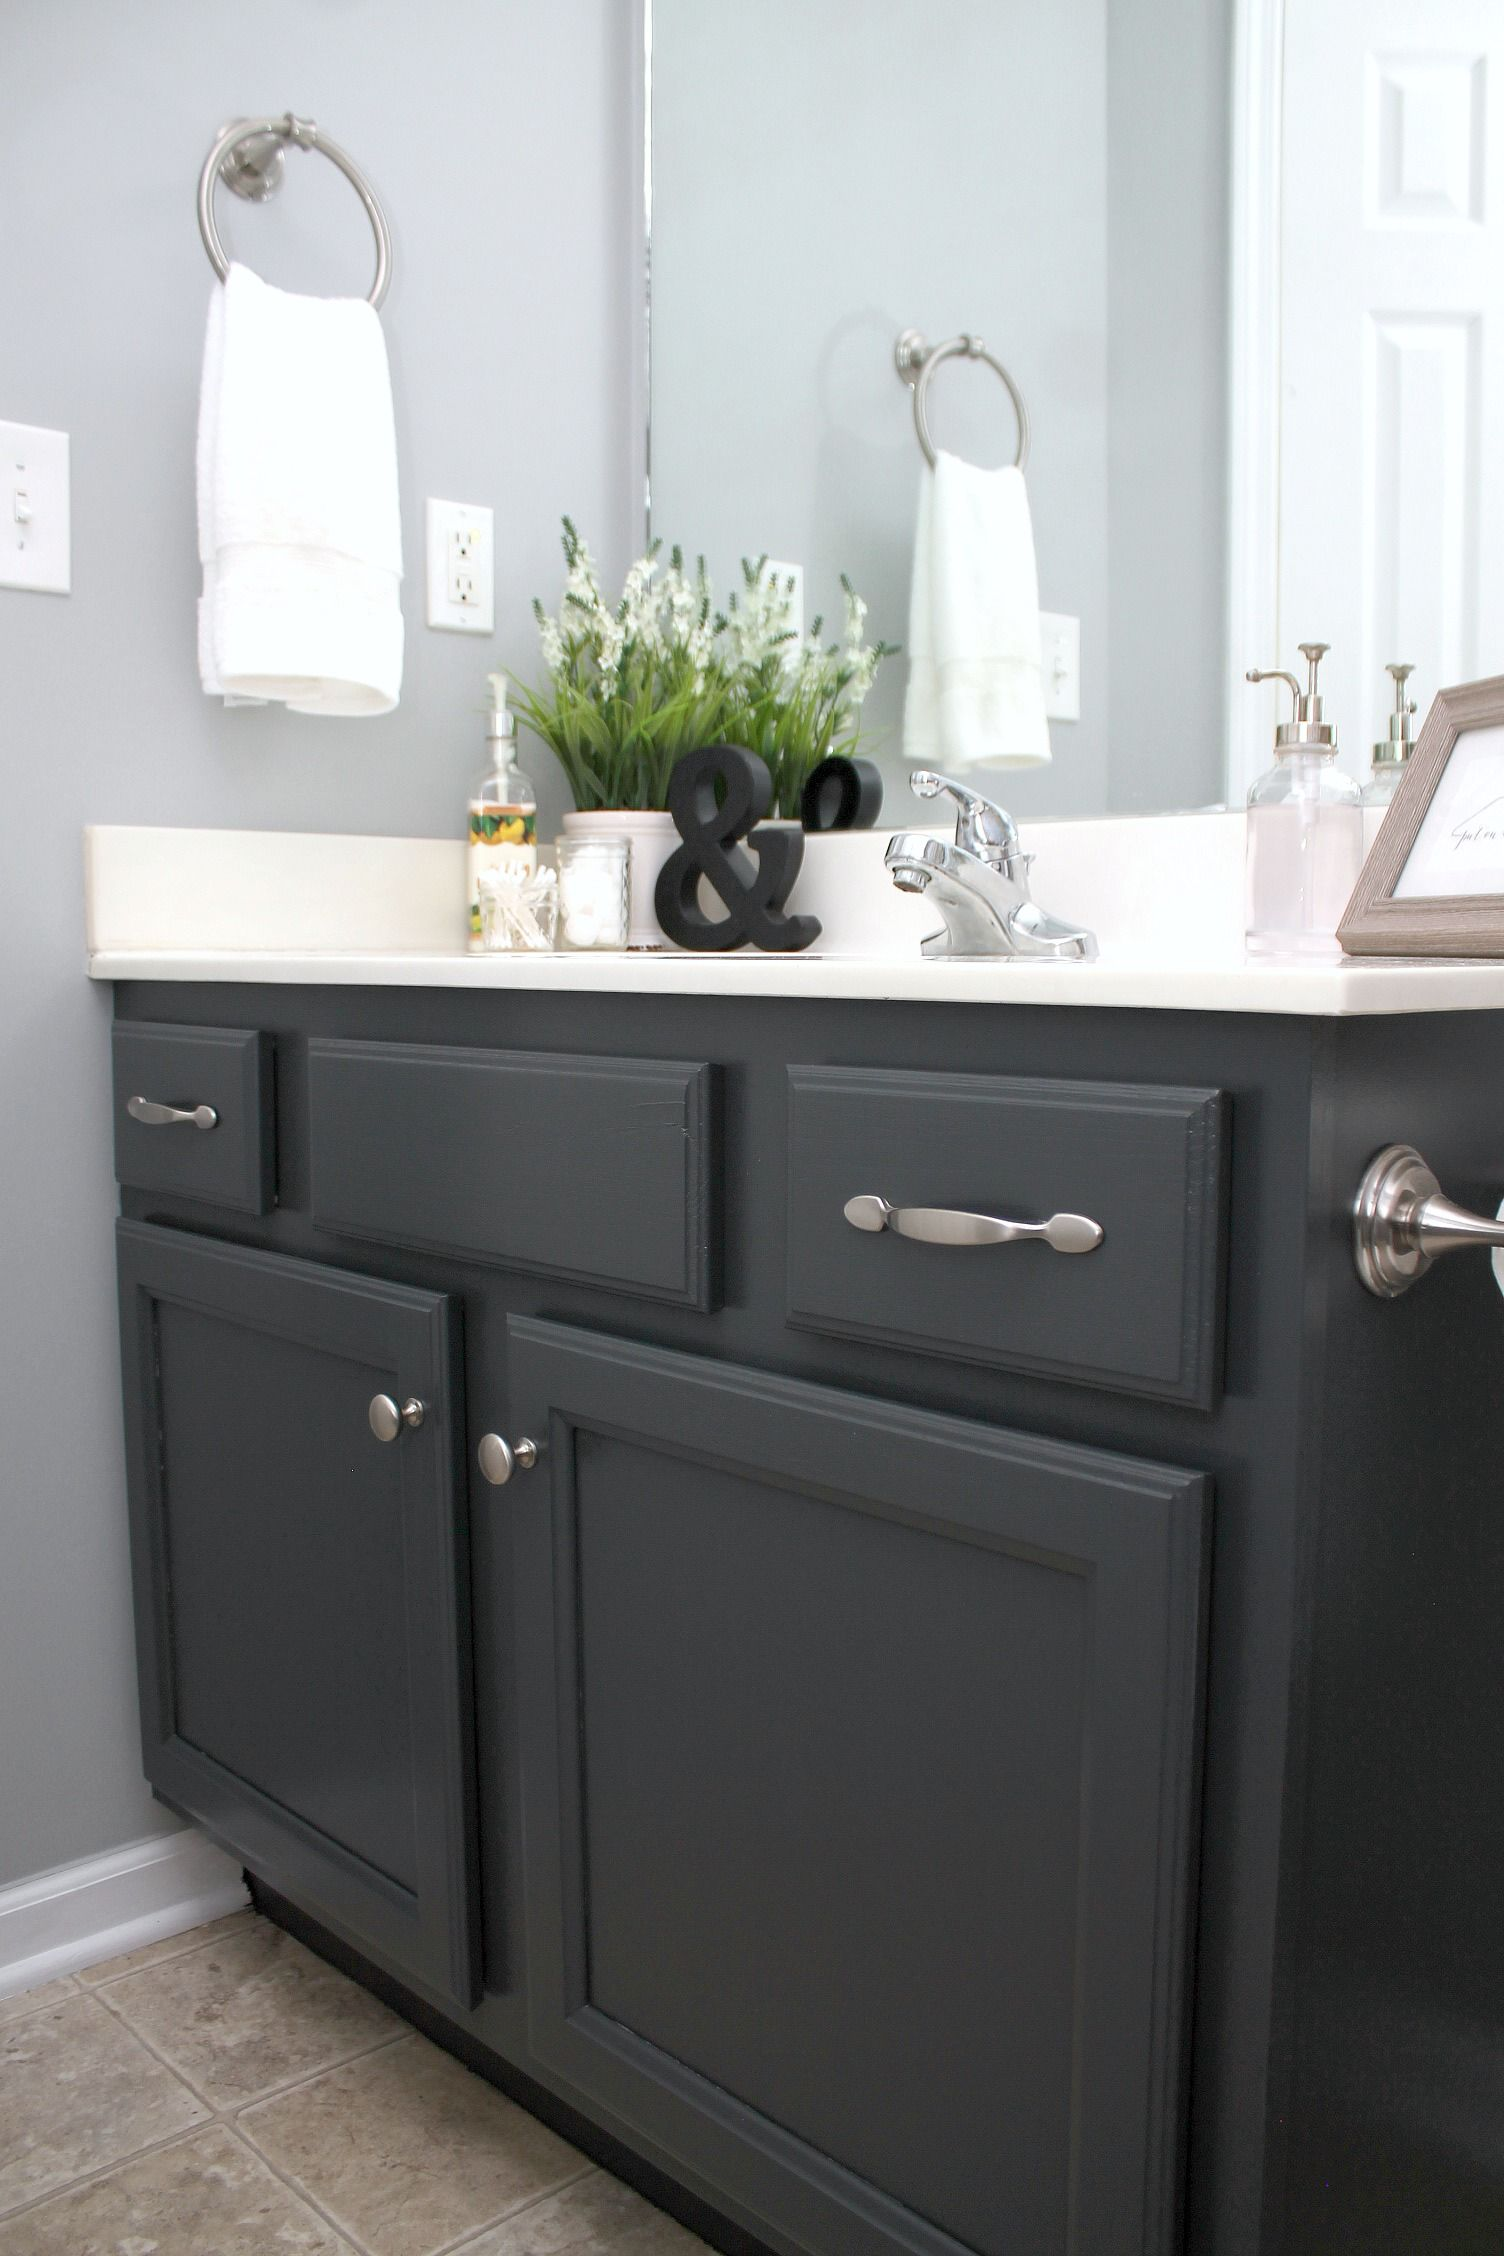 painting bathroom cabinet. Wanting To Update Your Bathroom? Painting Bathroom Cabinets Is A Budget Friendly Way! I Show You An Easy Method Painted That Cabinet